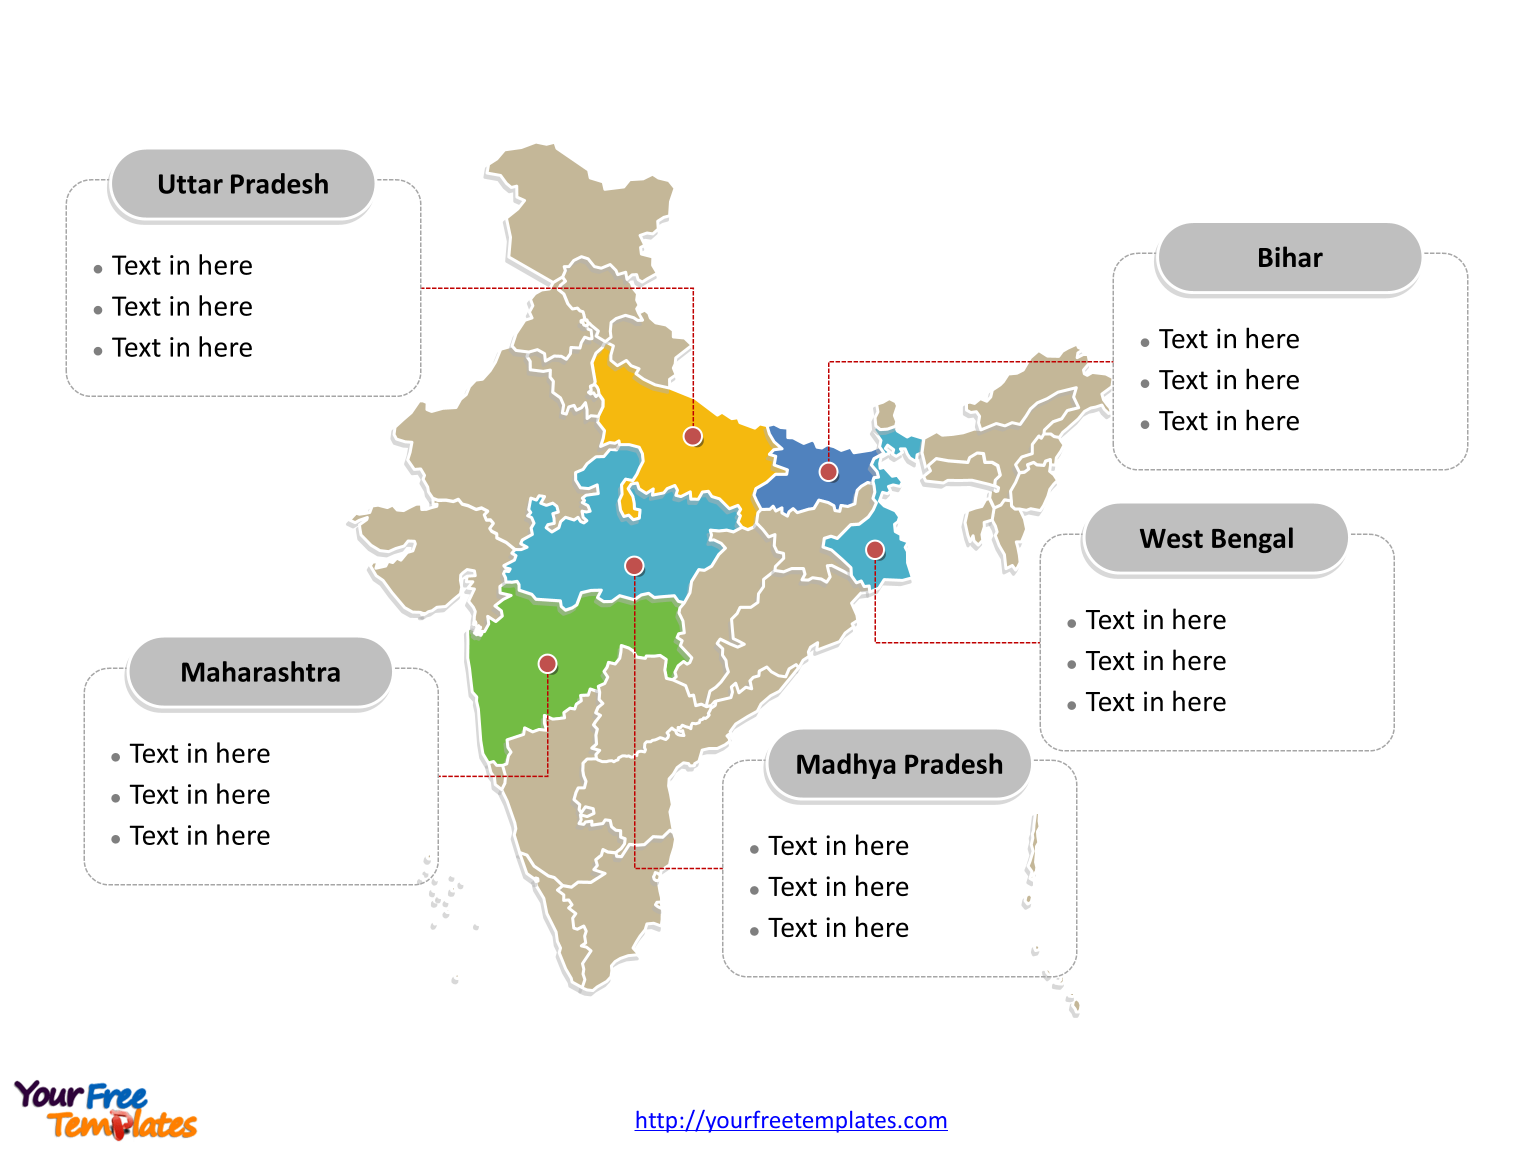 Kids science projects india political map free download.